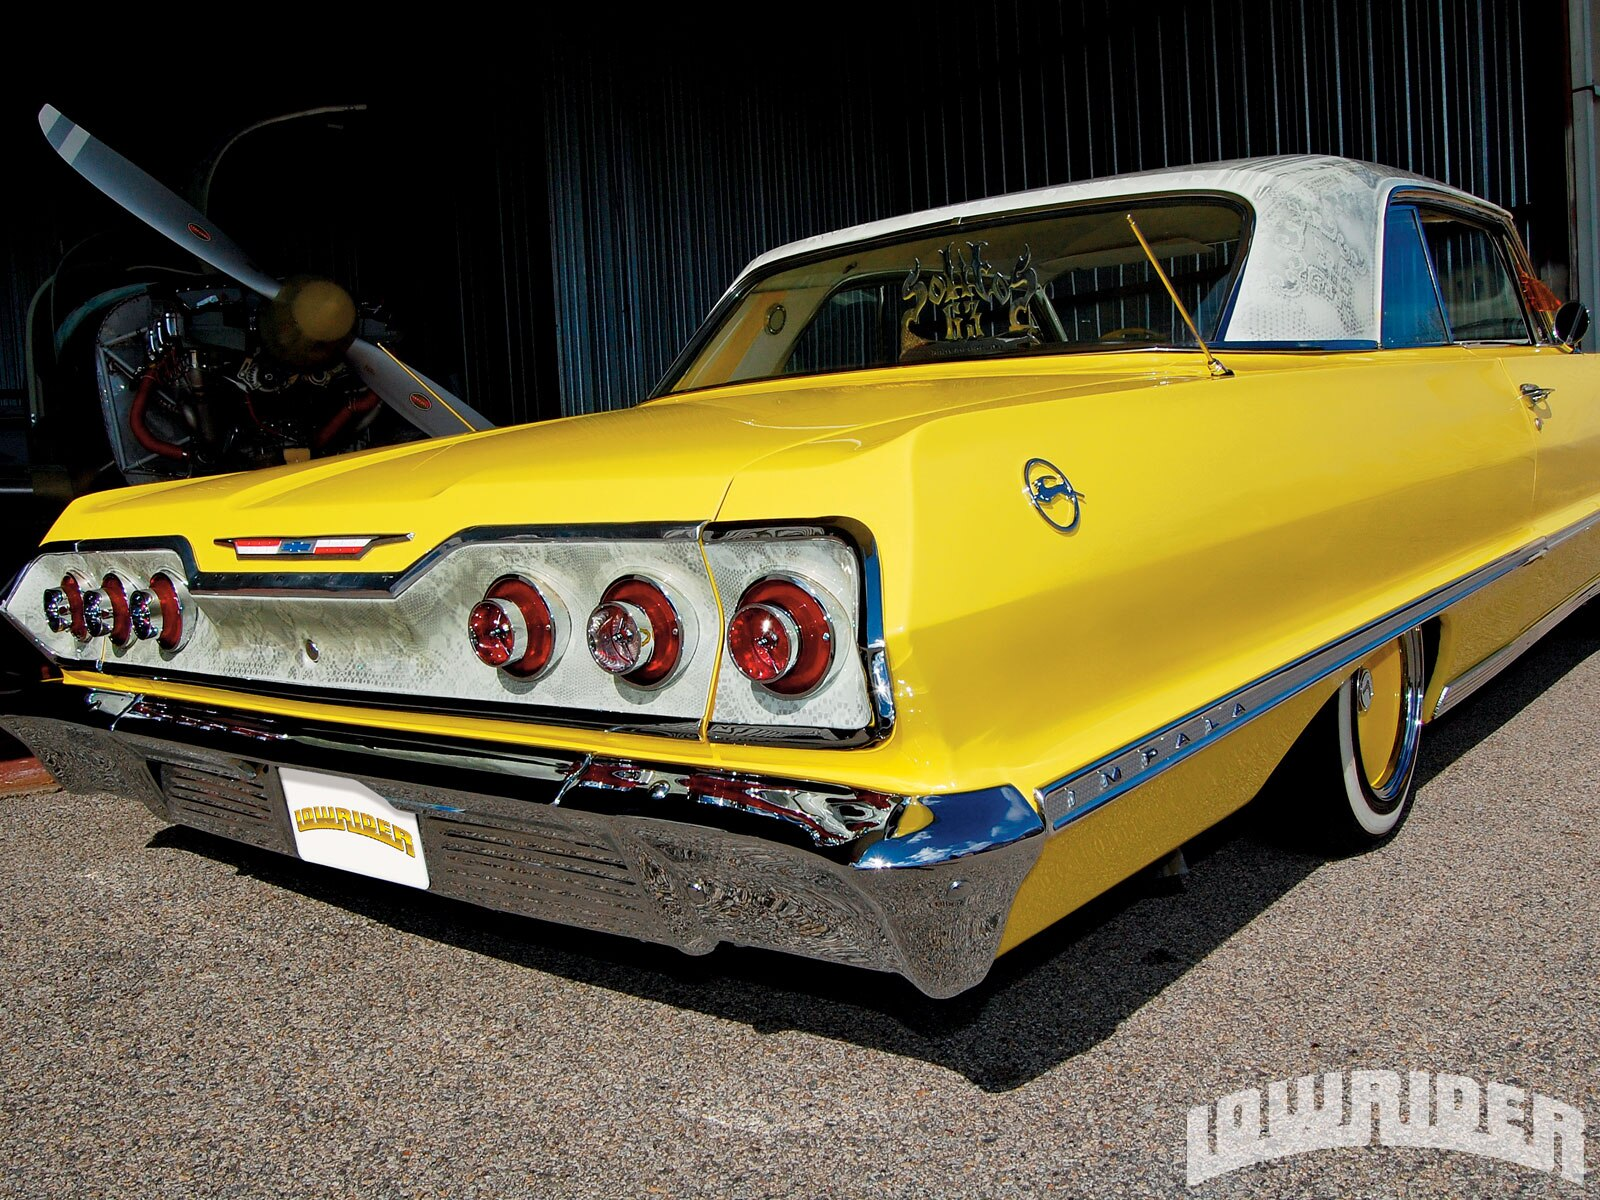 lrmp_1101_01_o-1963_chevy_impala-rear_view3